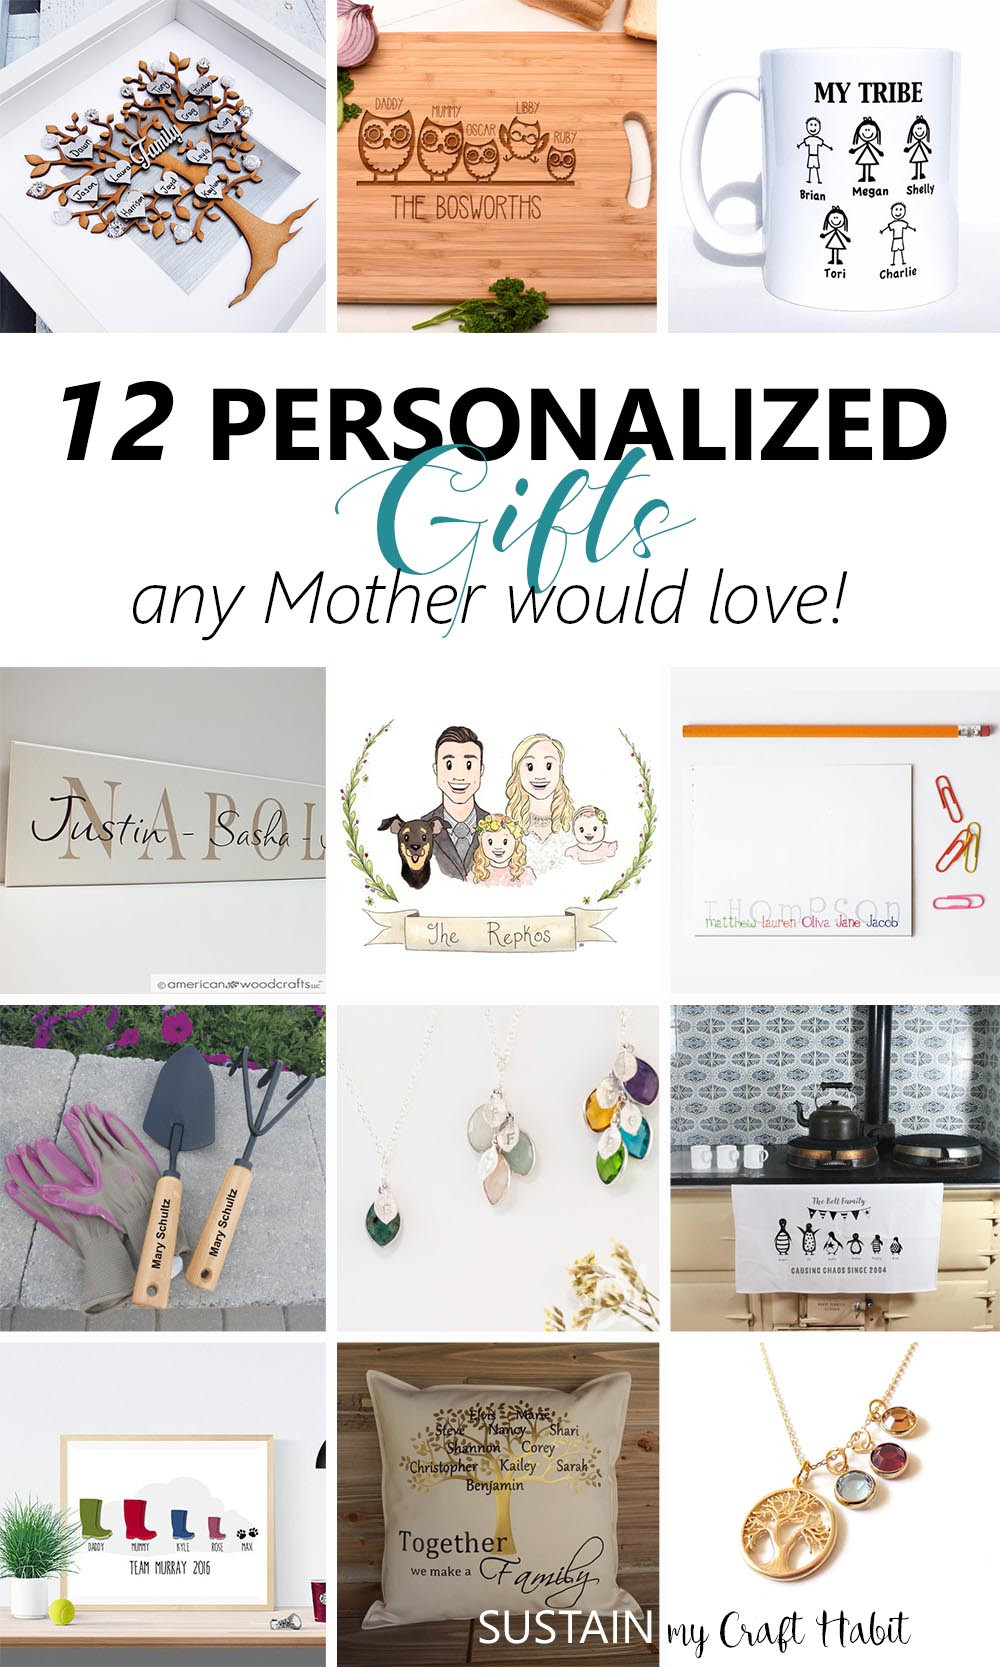 Best ideas about Engraved Gift Ideas . Save or Pin 12 Thoughtful Personalized Gifts any Mother Would Love Now.